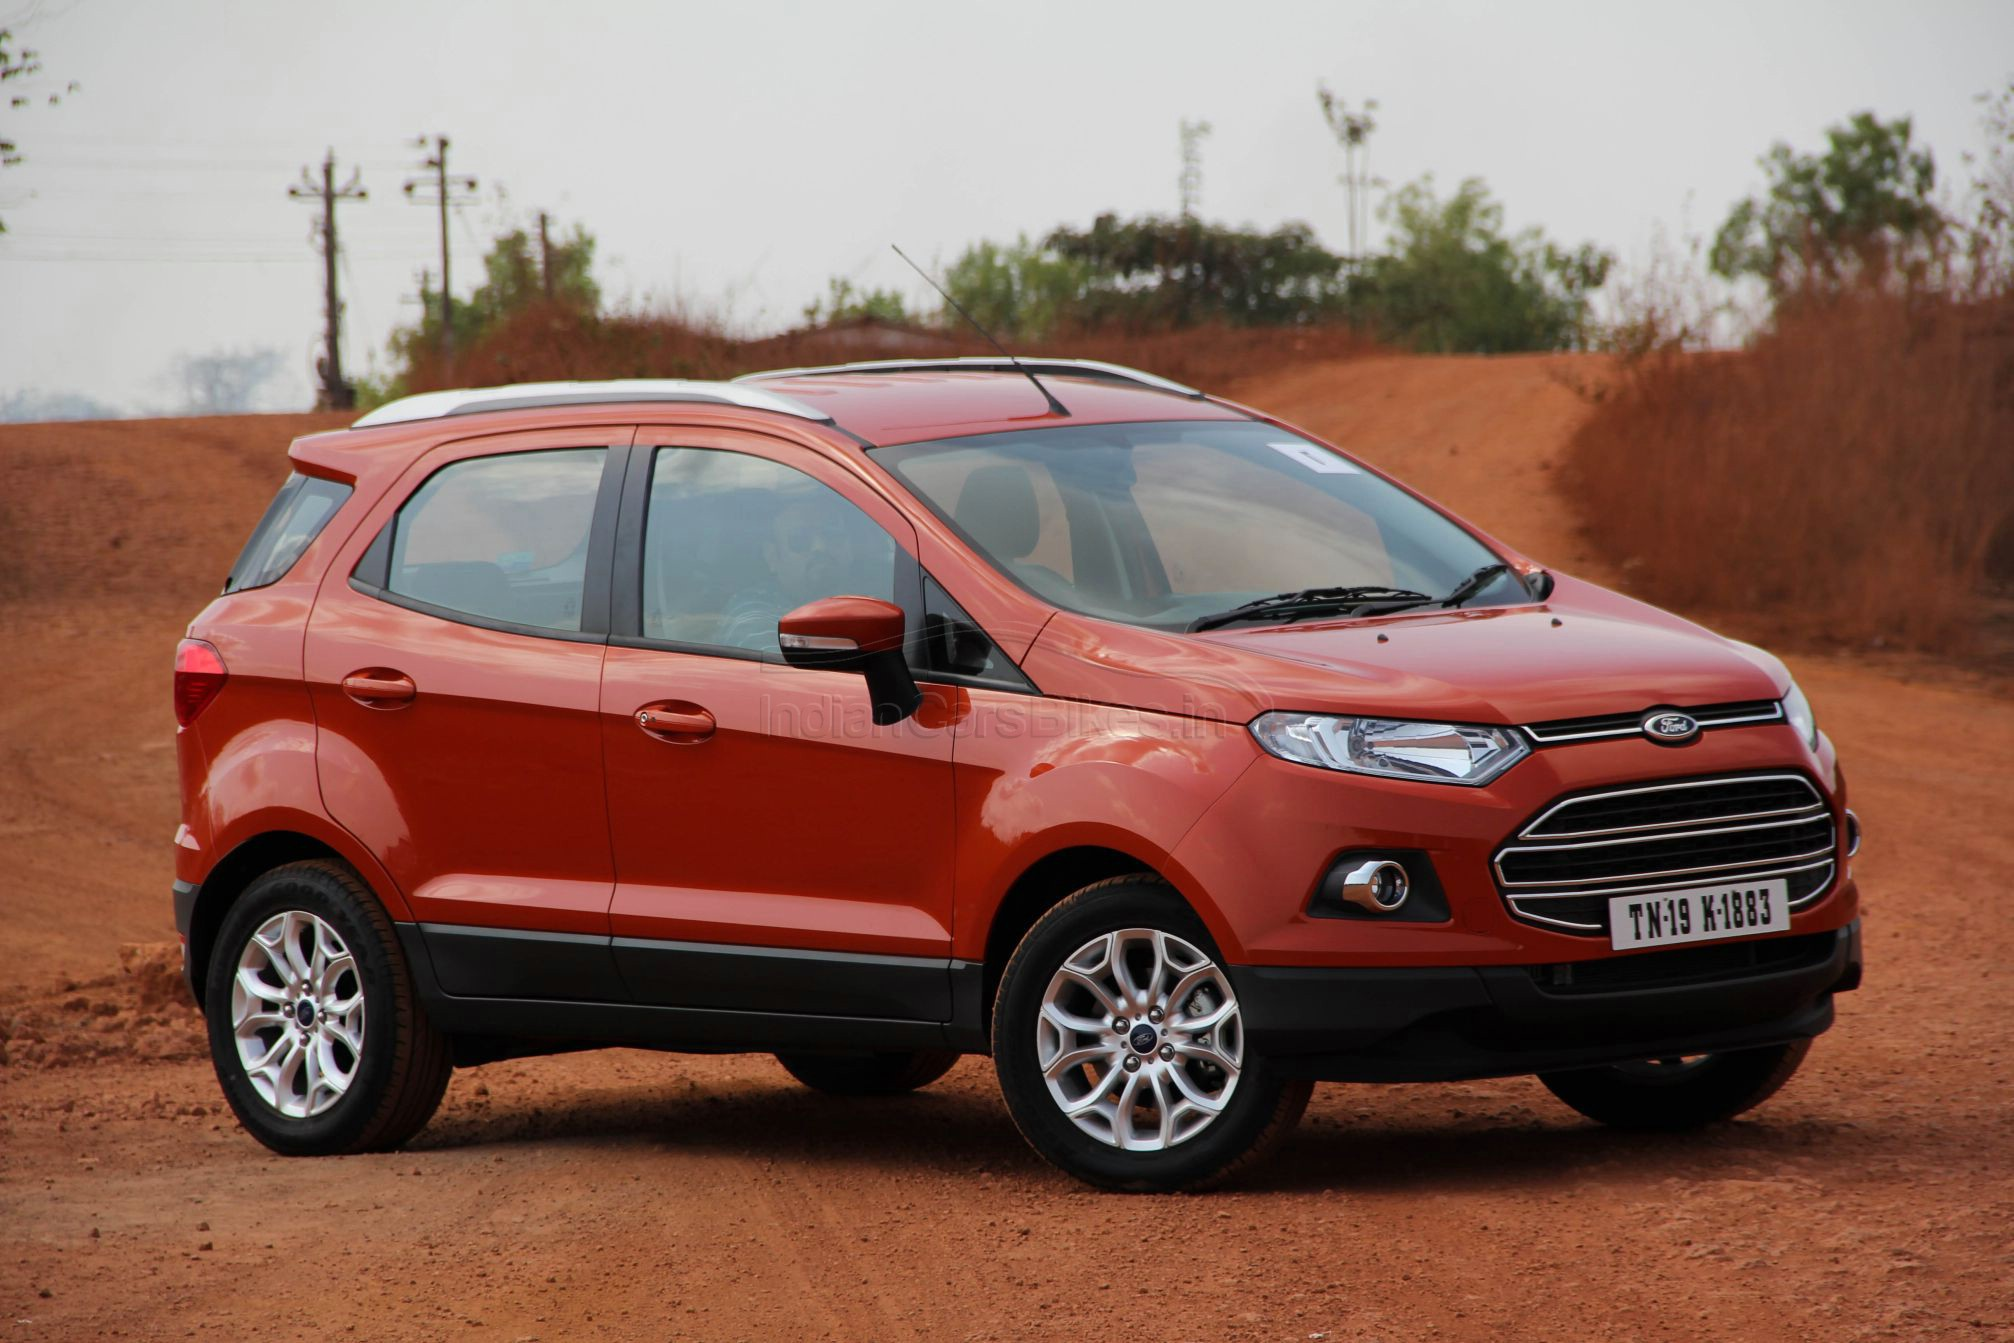 Ford EcoSport photos  PhotoGallery with 15 pics CarsBasecom